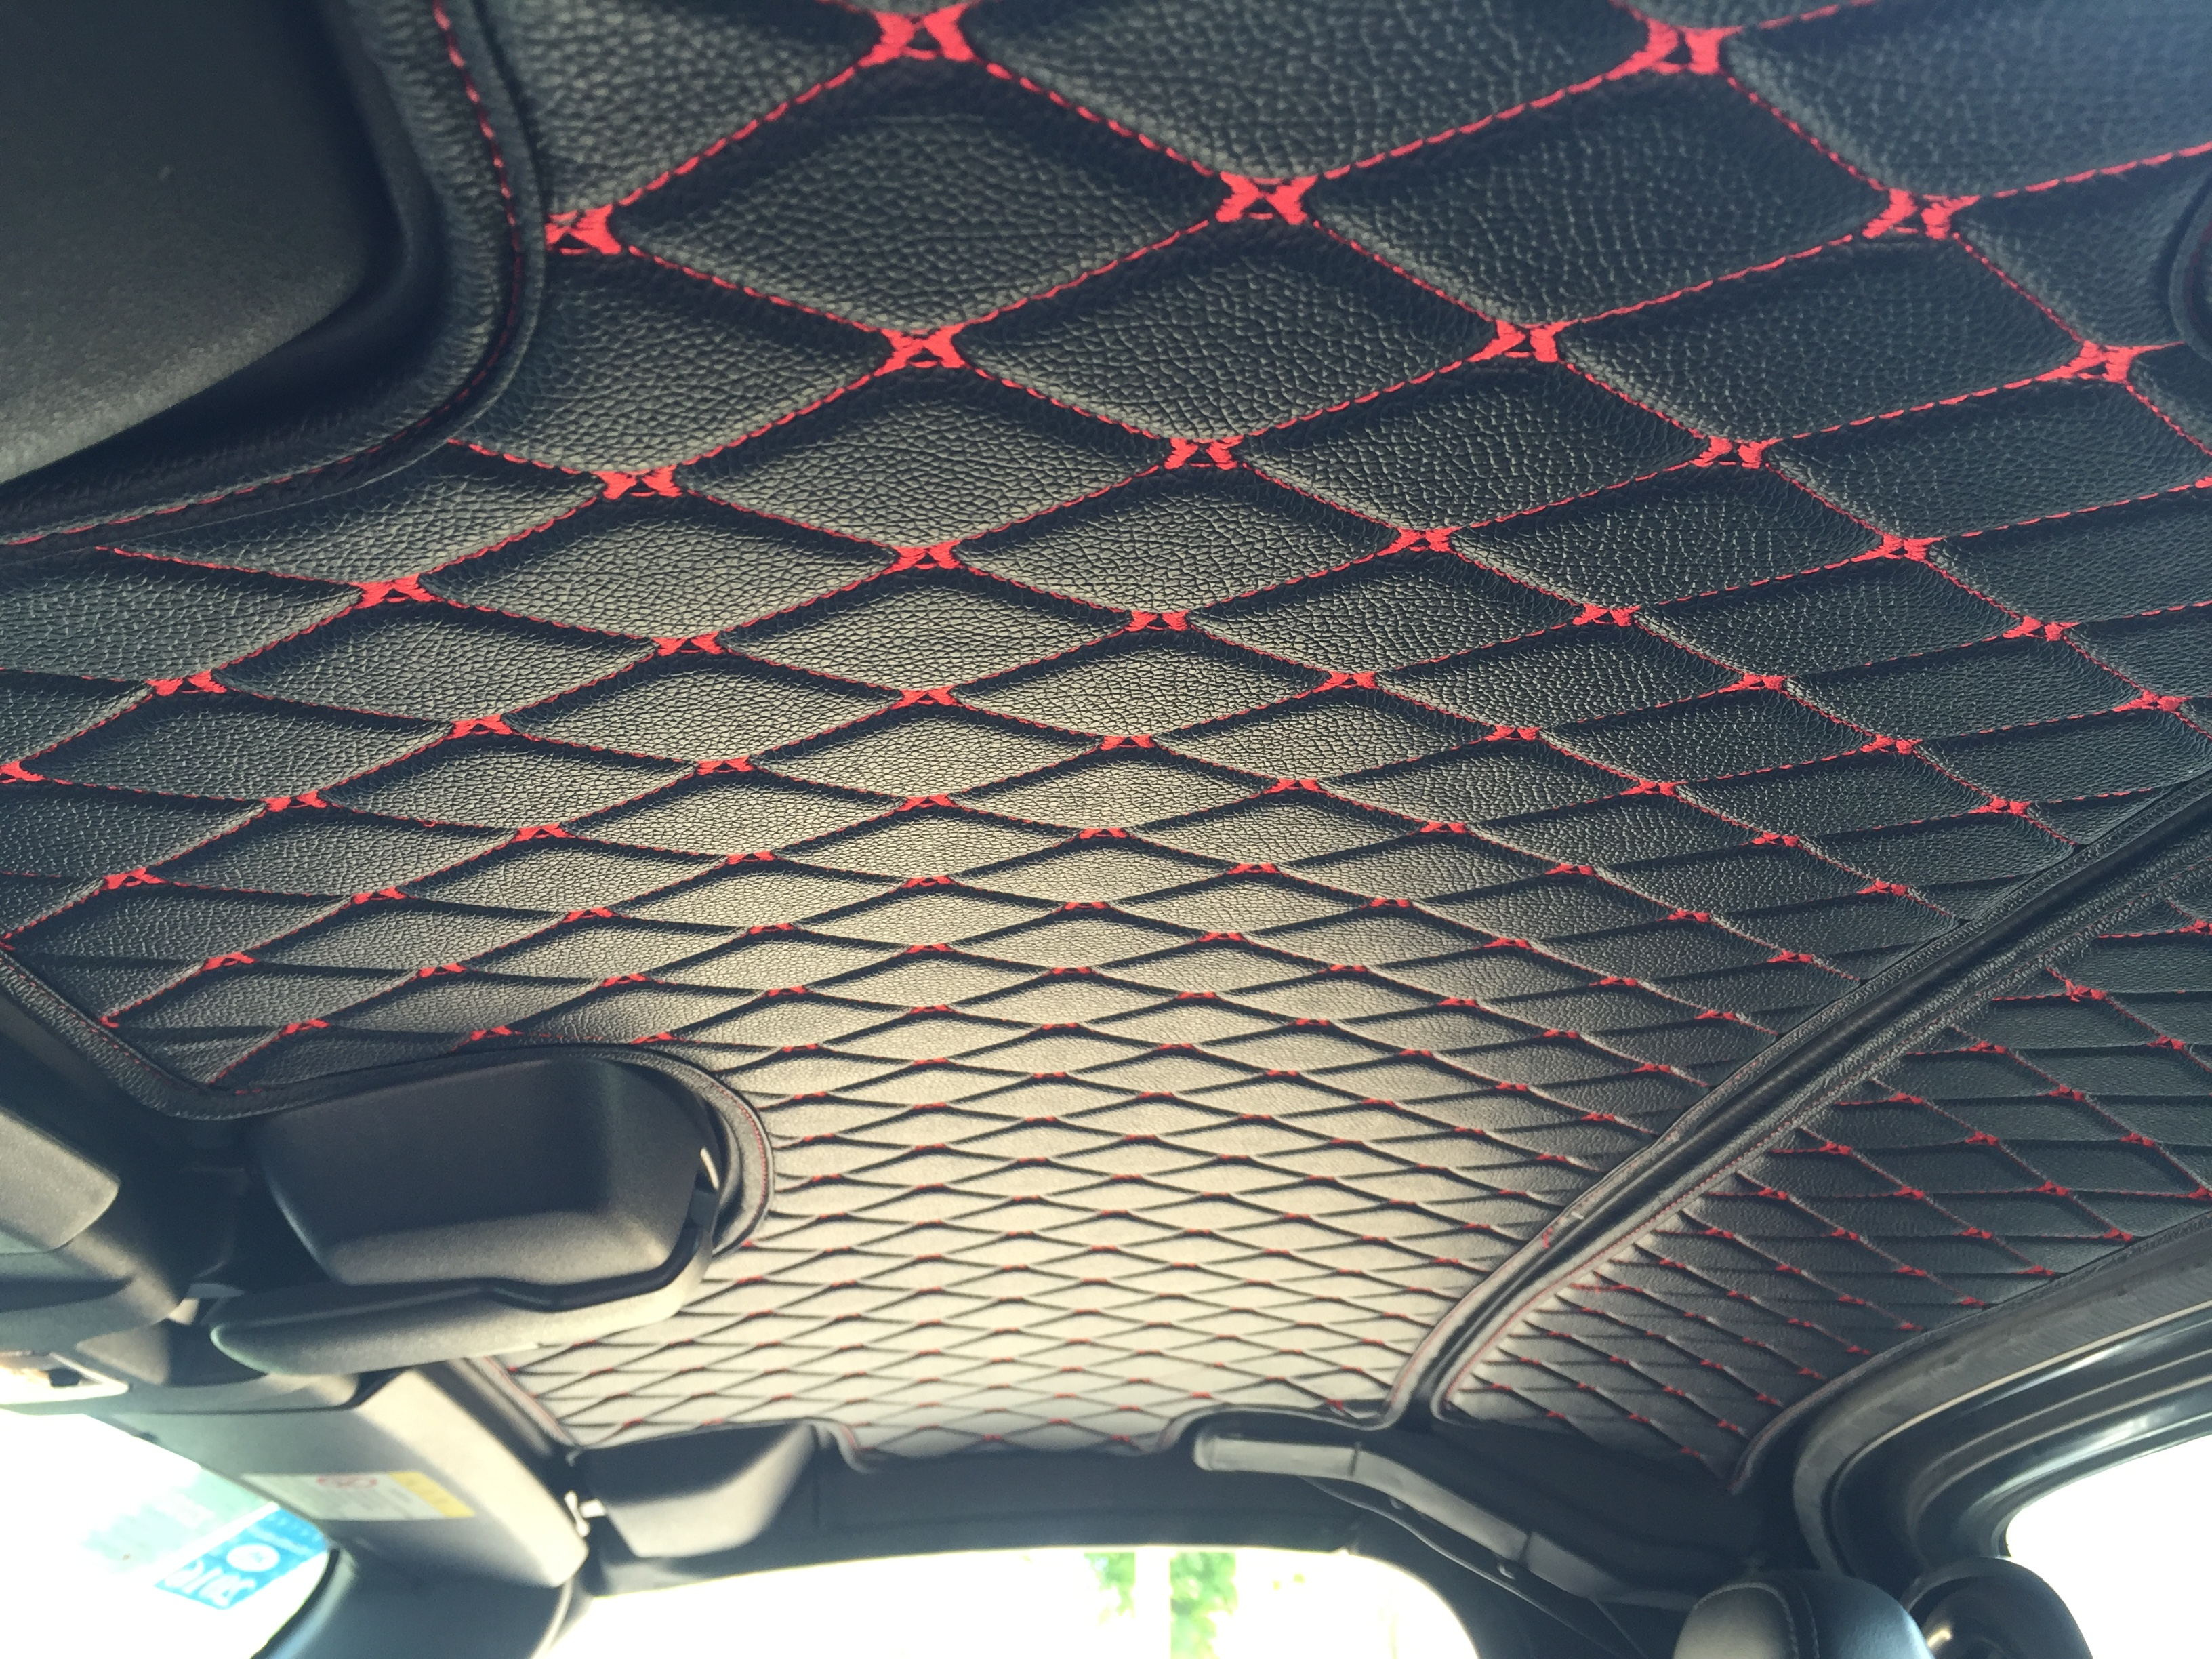 Roof liner material suede headliner upholstery fabric foam back suede jet black auto headliner Car interior ceiling fabric repair